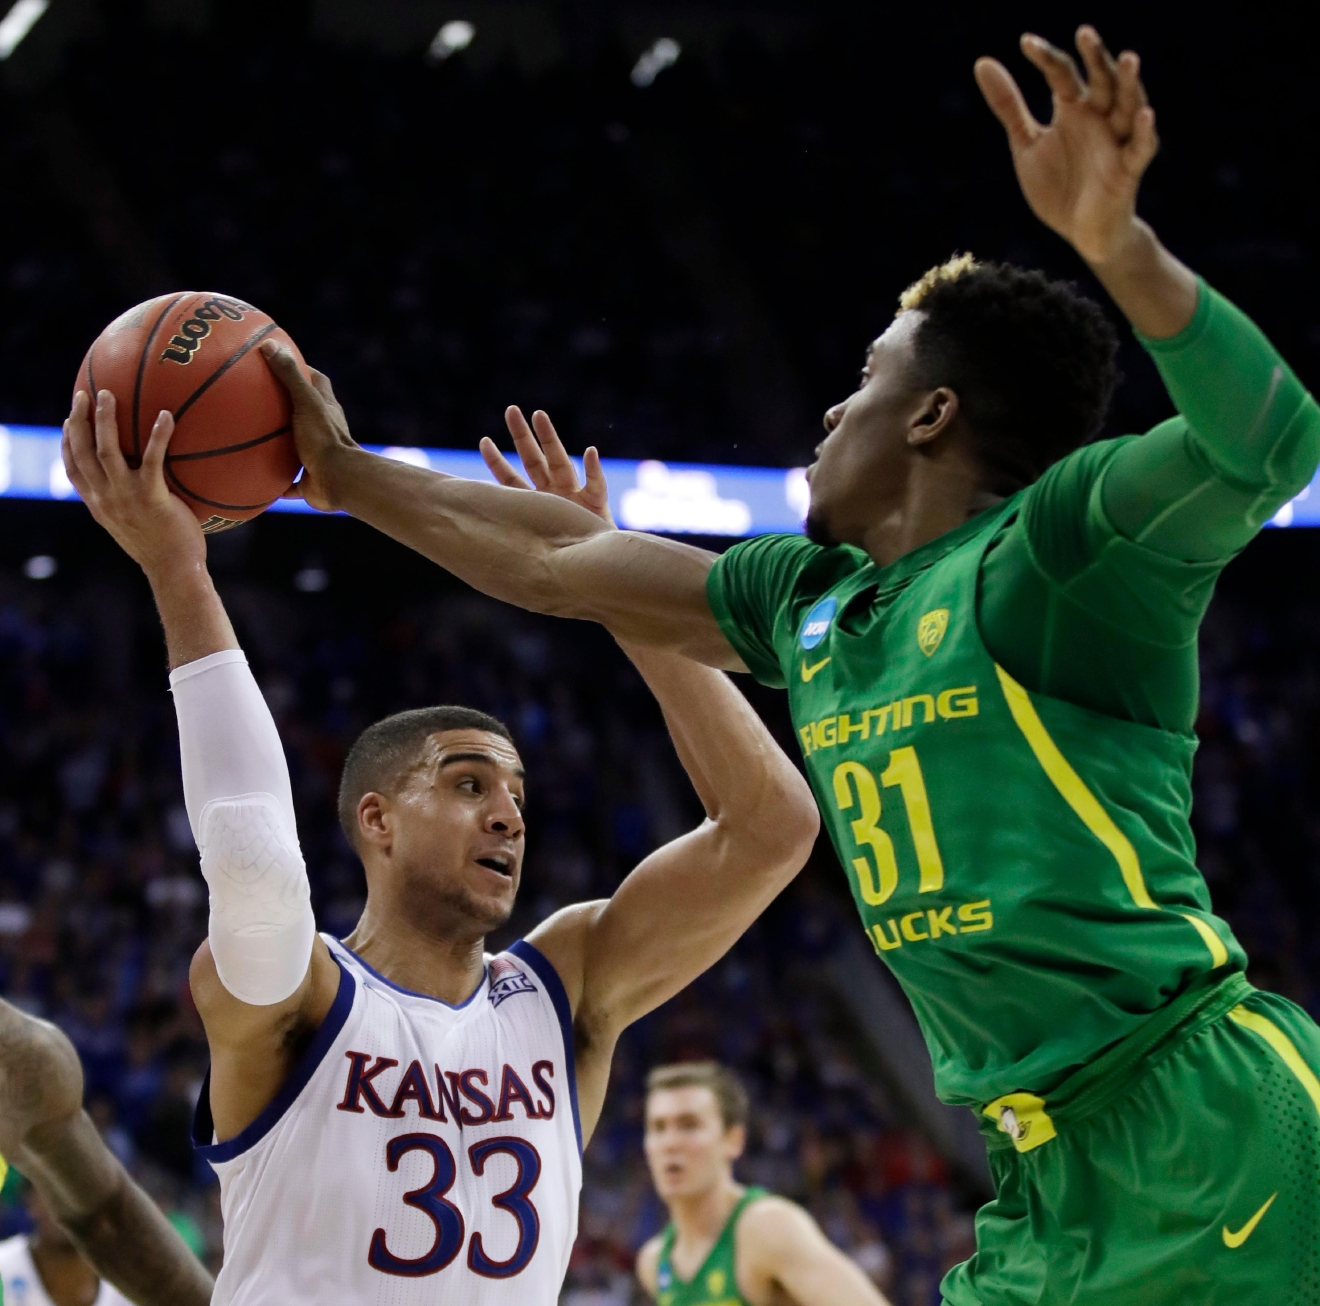 Kansas forward Landen Lucas (33) tries to pass over Oregon guard Dylan Ennis (31) during the first half of the Midwest Regional final of the NCAA men's college basketball tournament, Saturday, March 25, 2017, in Kansas City, Mo. (AP Photo/Charlie Riedel)